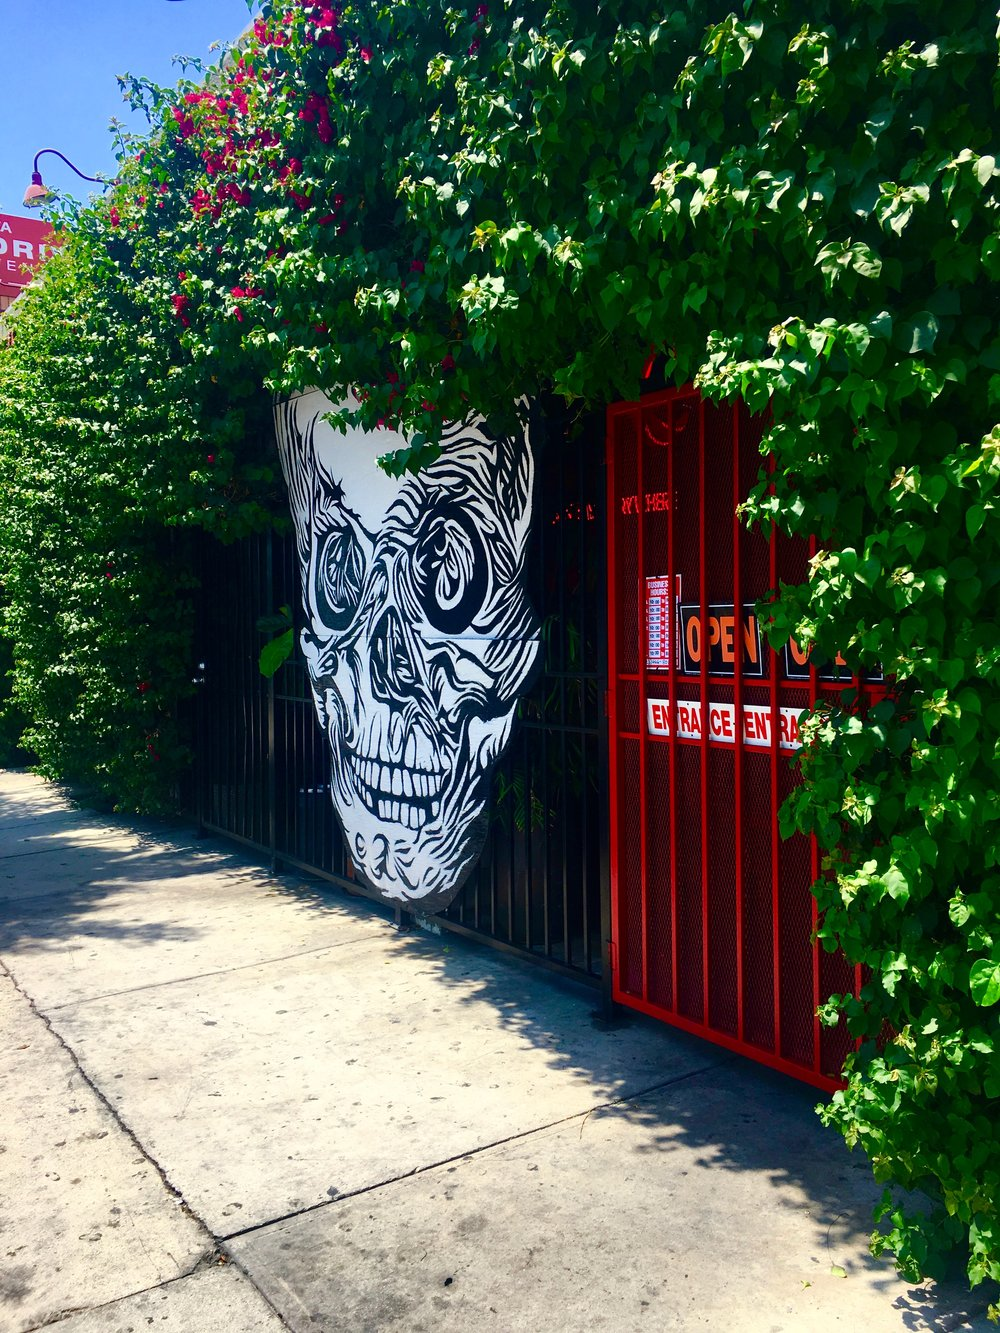 The Museum of Death exterior (photo by Meghan Ianiro)